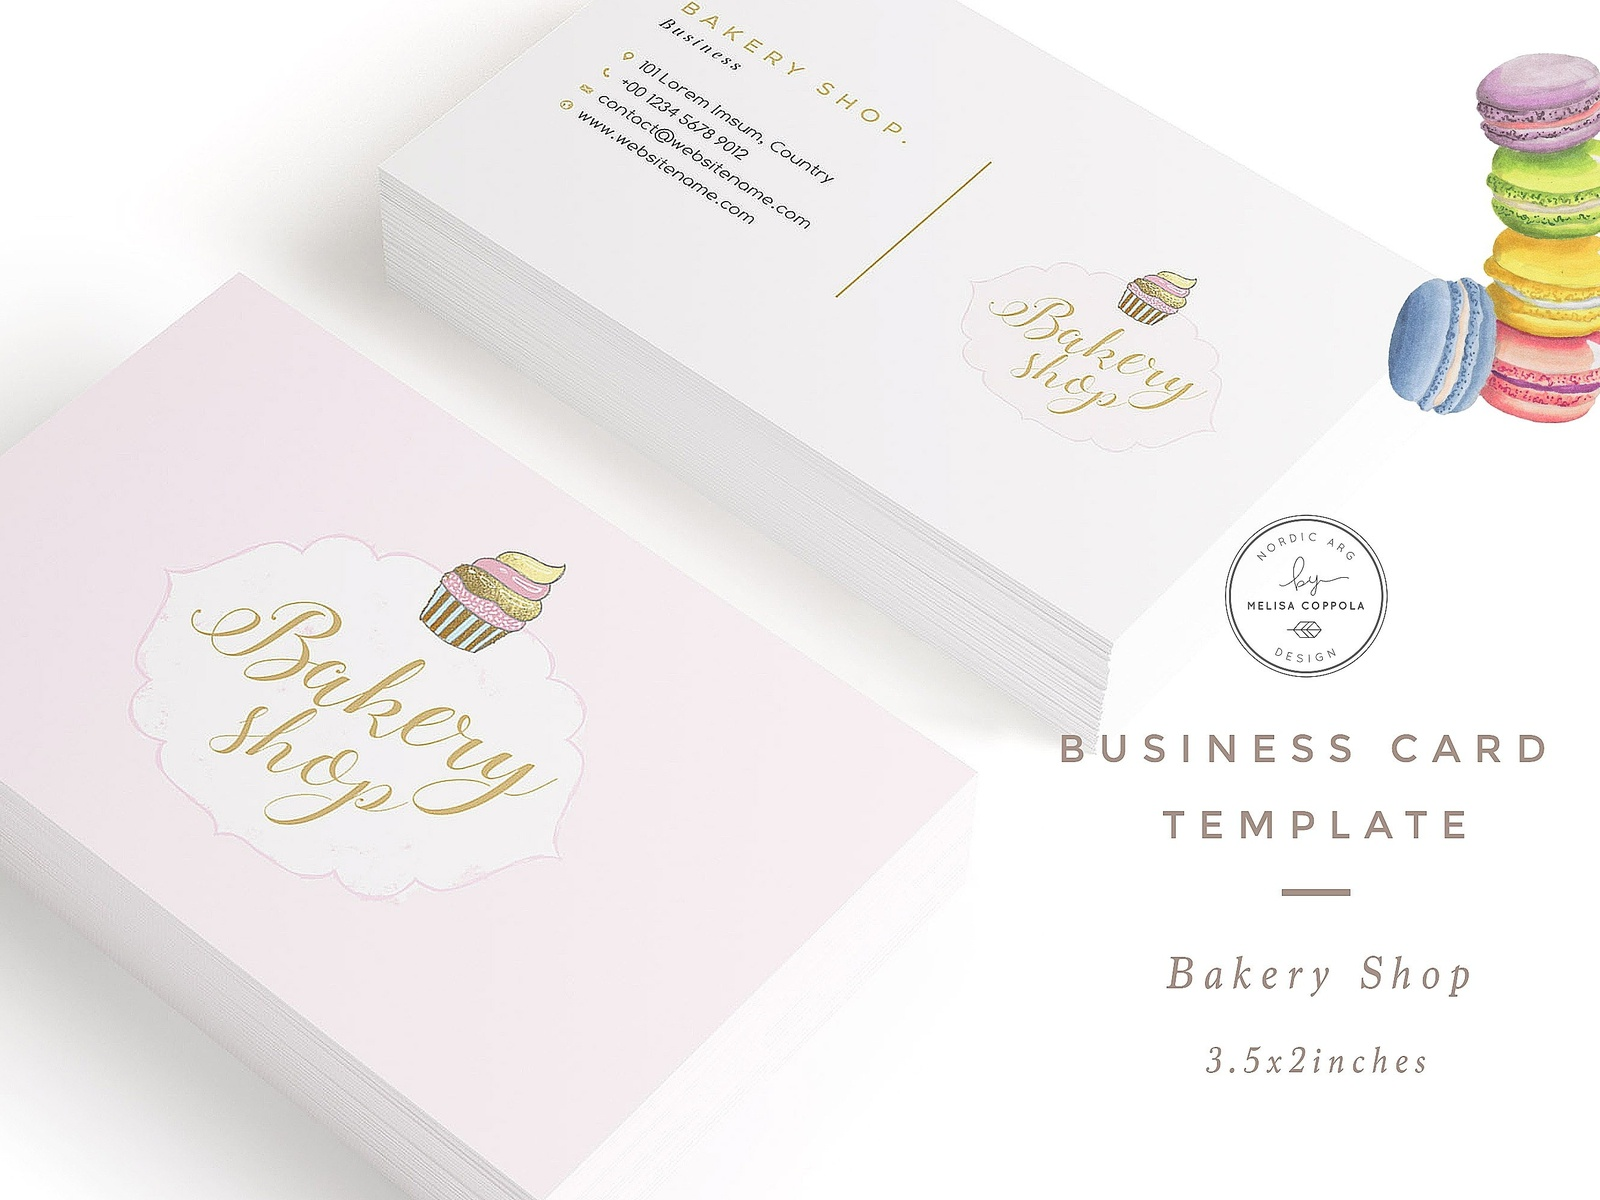 Bakery shop business card template by business cards dribbble httpscreativemarketmelippola1473221 bakery shop business card templateuaurom reheart Image collections